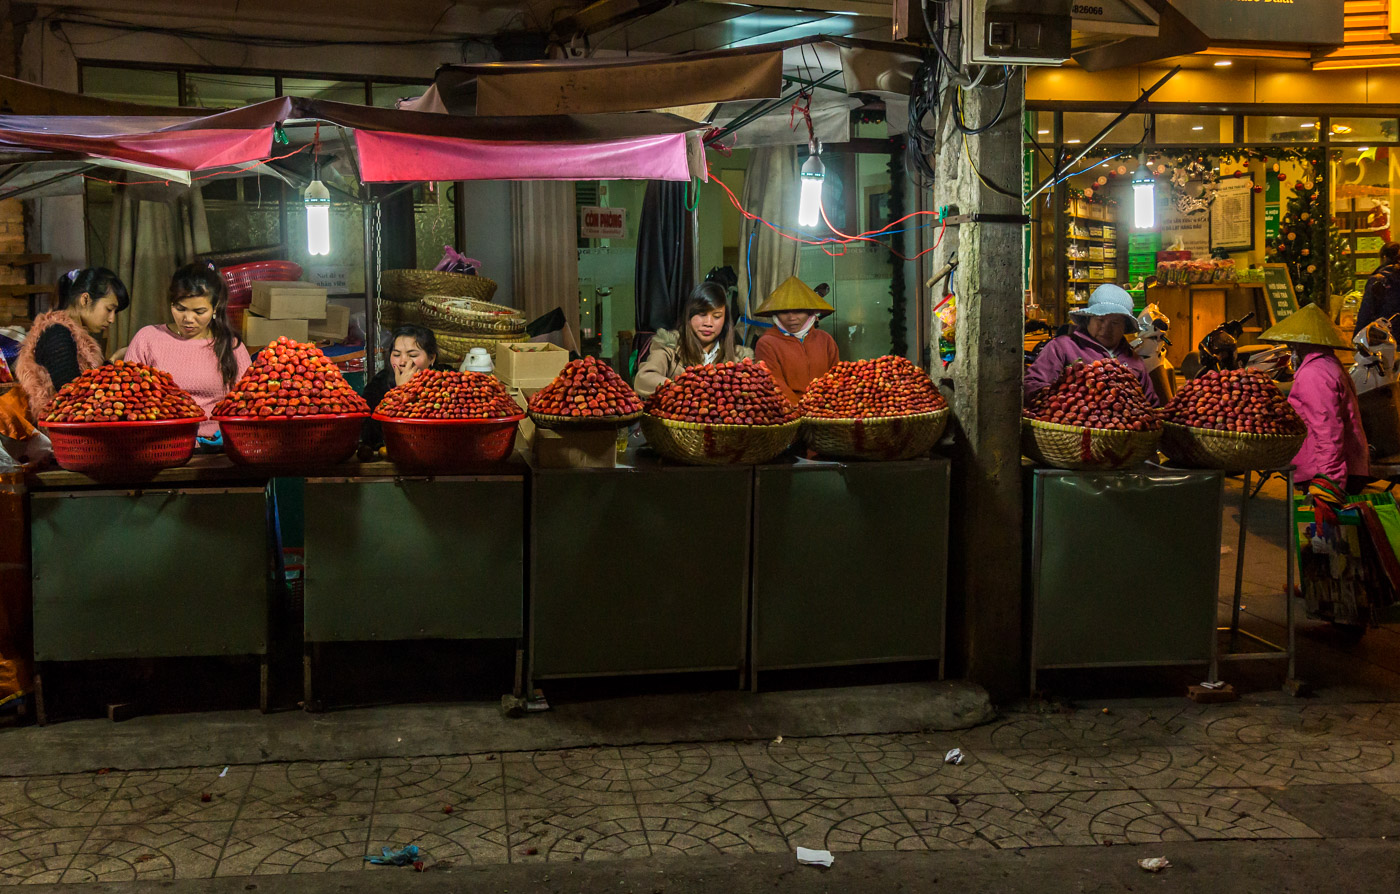 Strawberries at the night market.